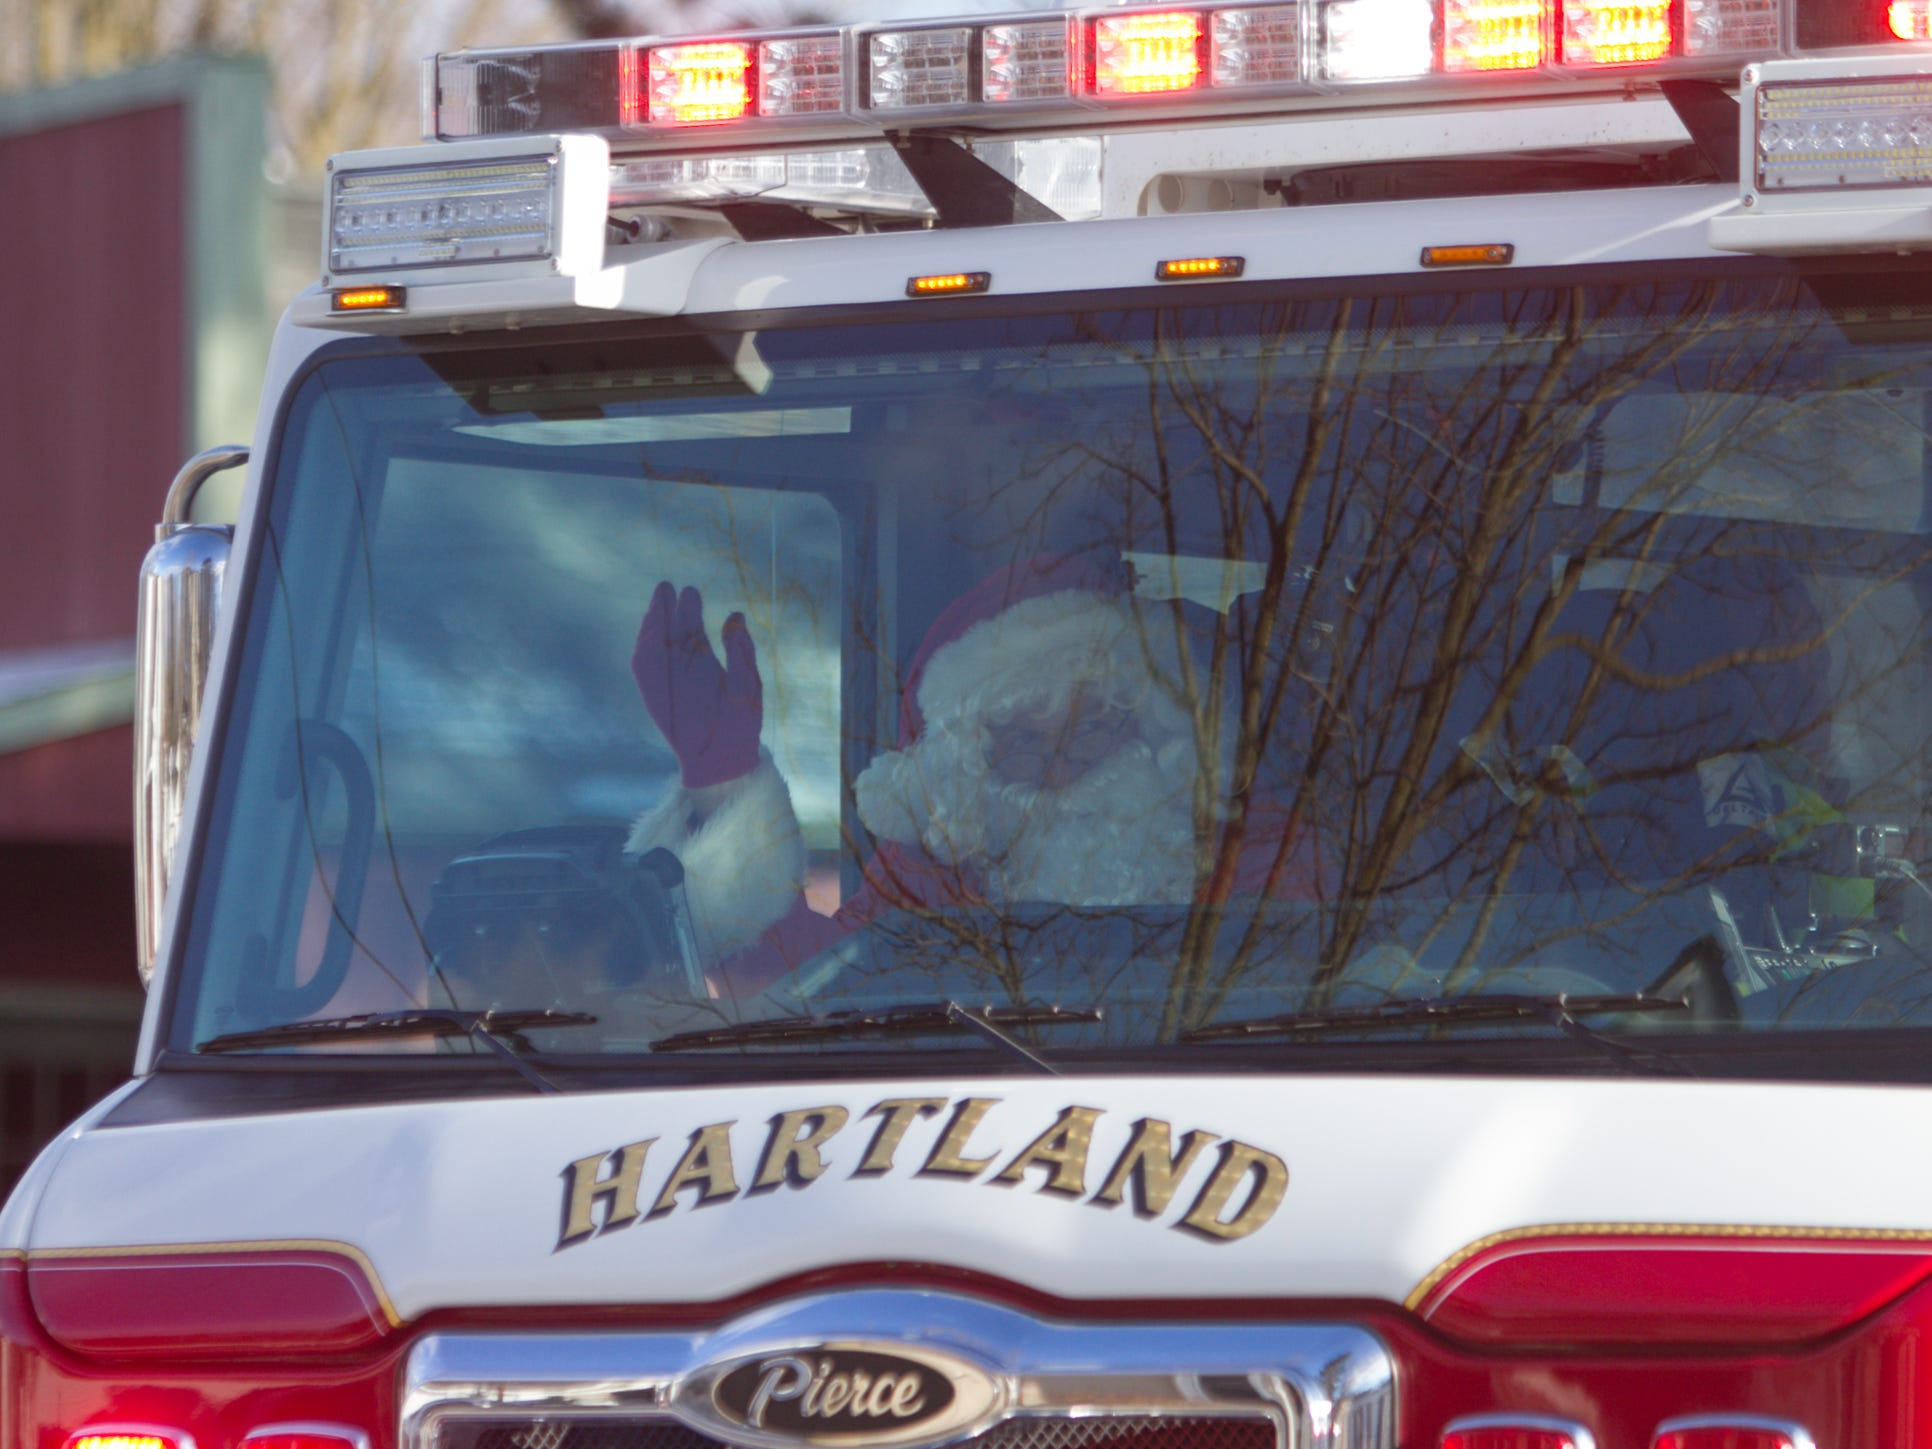 Santa arrives via a Hartland Area Fire Department engine Saturday, Dec. 8, 2018 for Hartland's Polar Express Day.